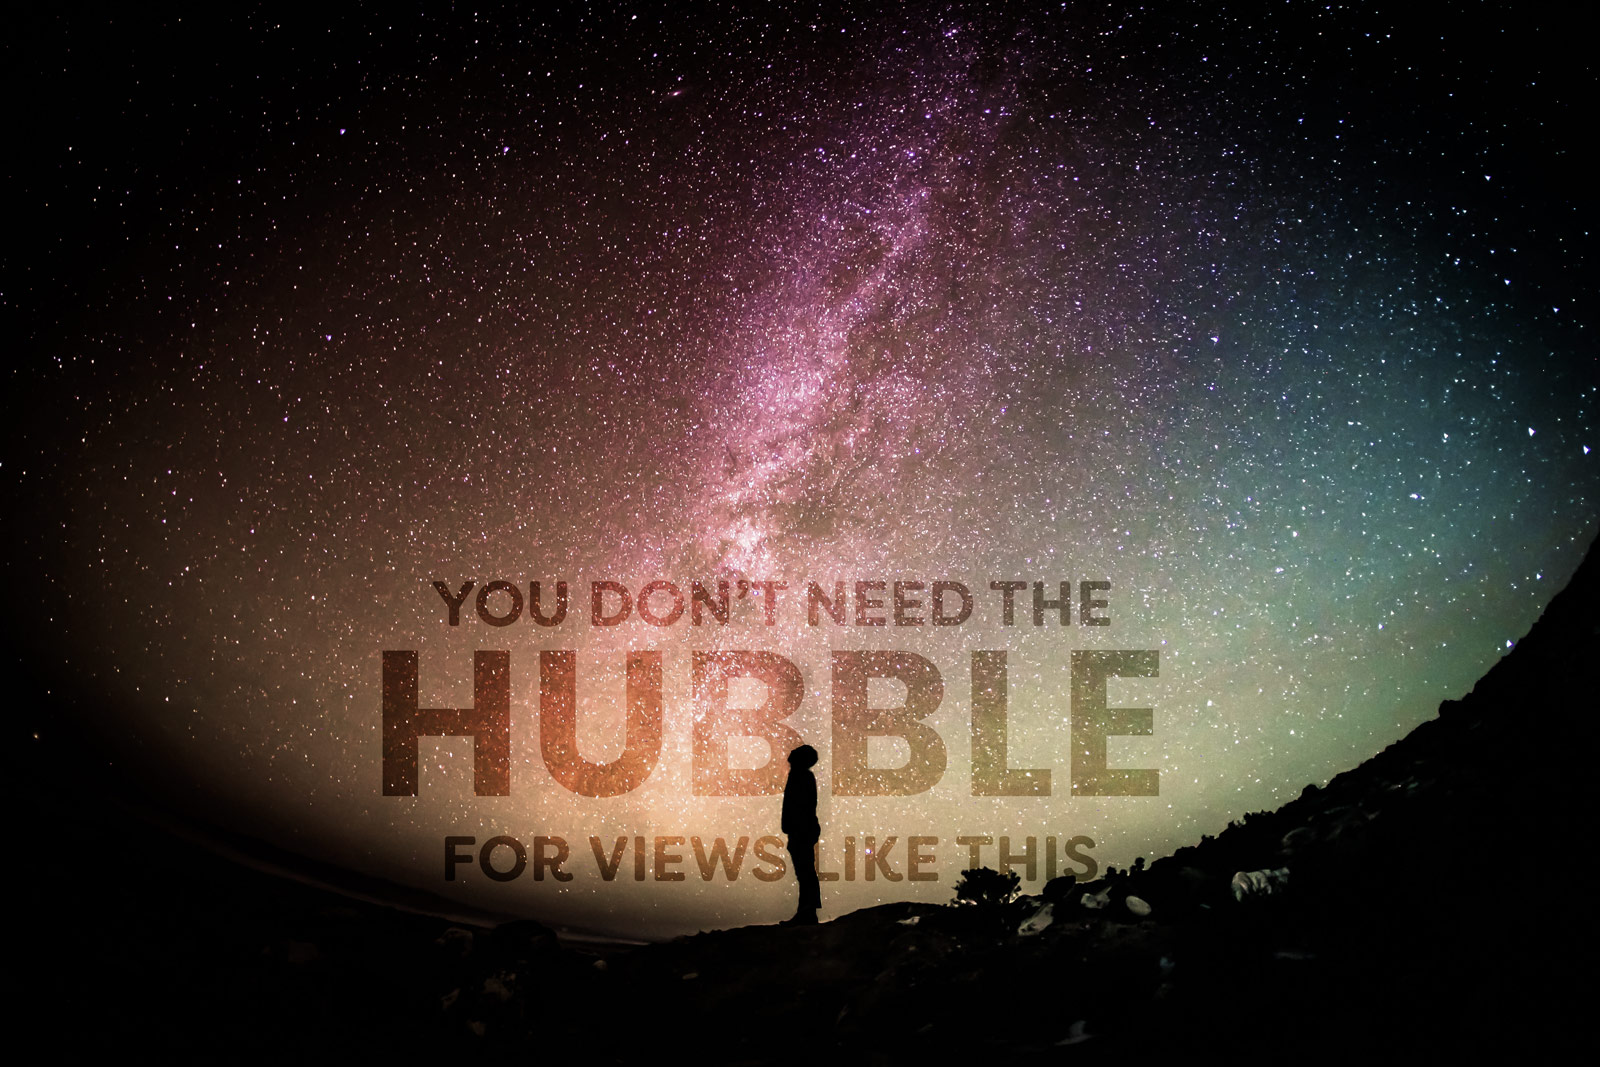 Silhouette of person gazing at the milky way with overlaid text: You don't need the hubble for views like this.